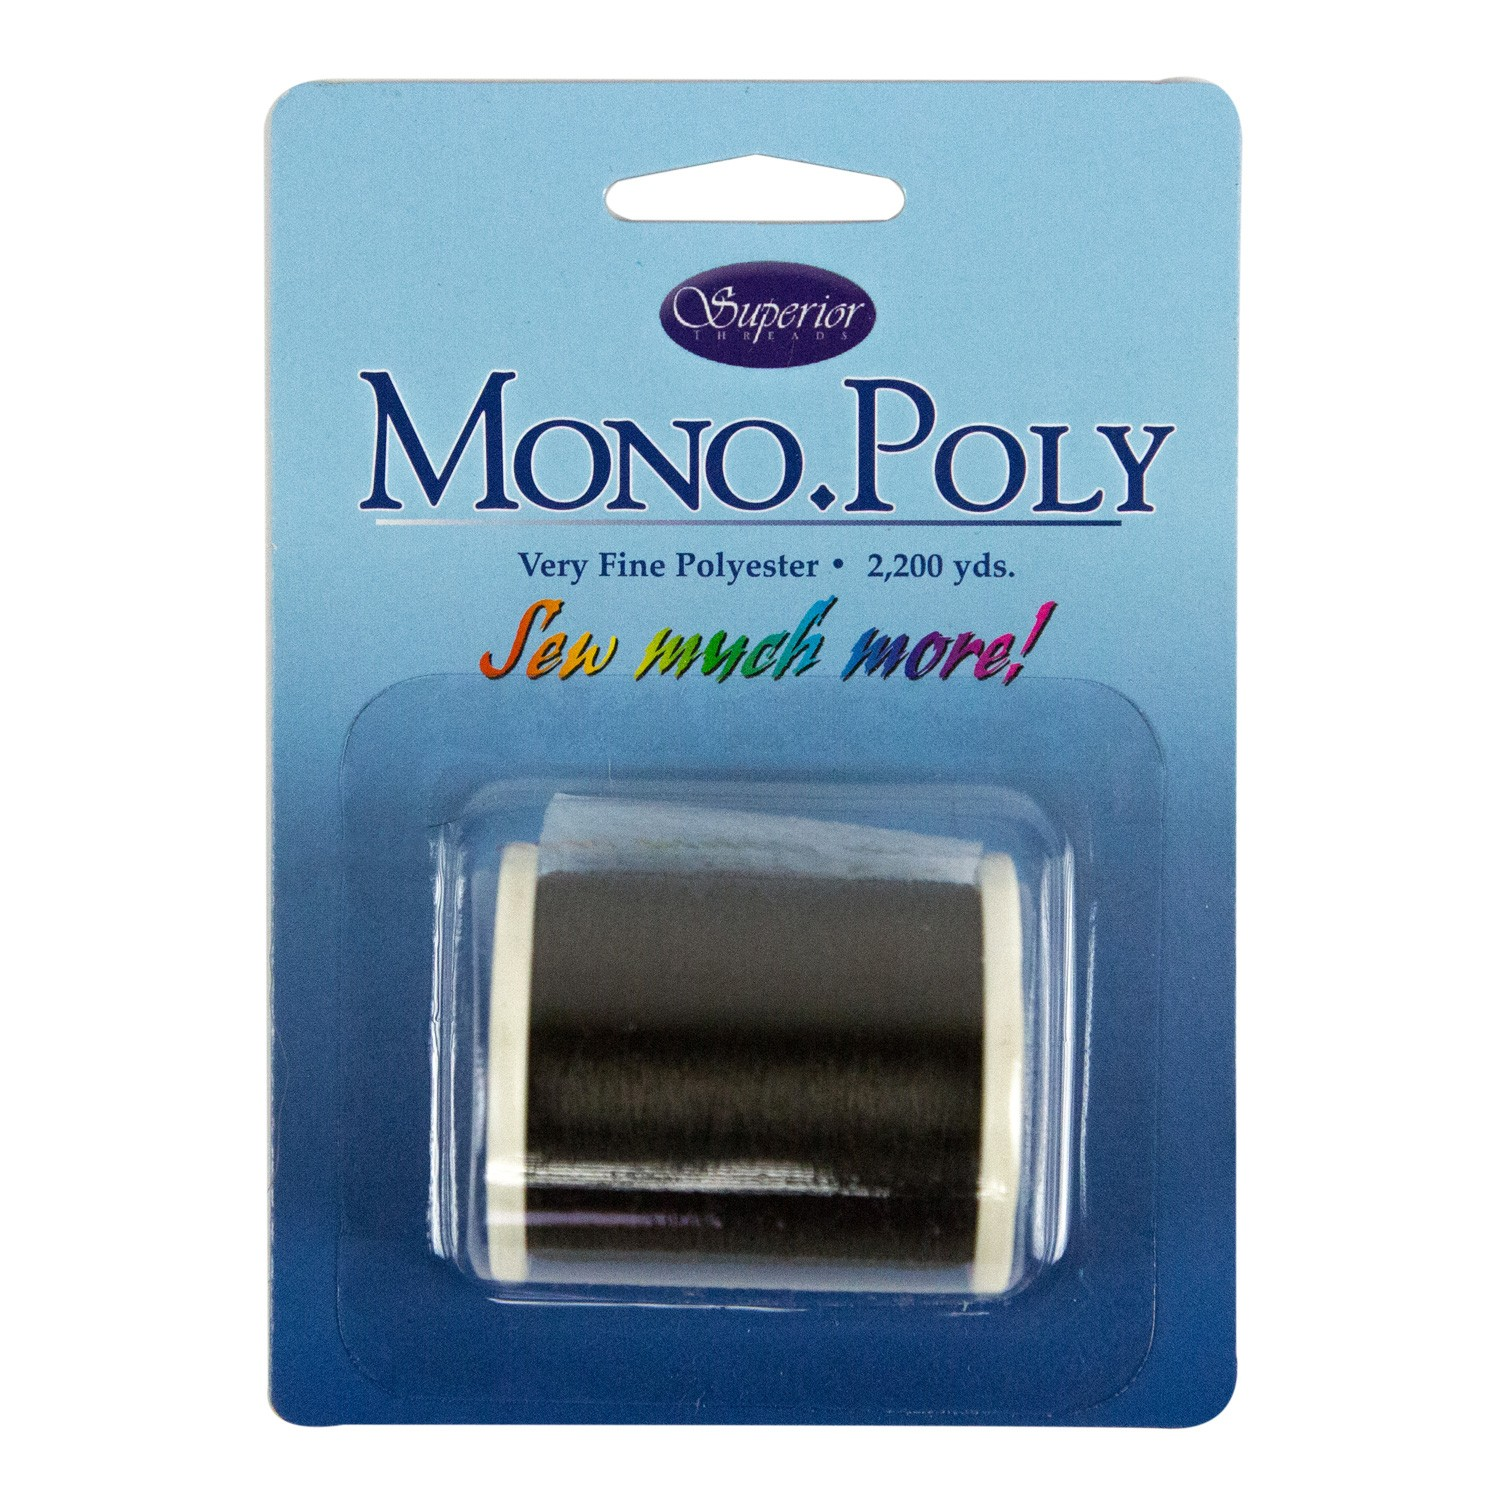 MonoPoly Invisible Polyester Thread .004mm 2200yds Smoke